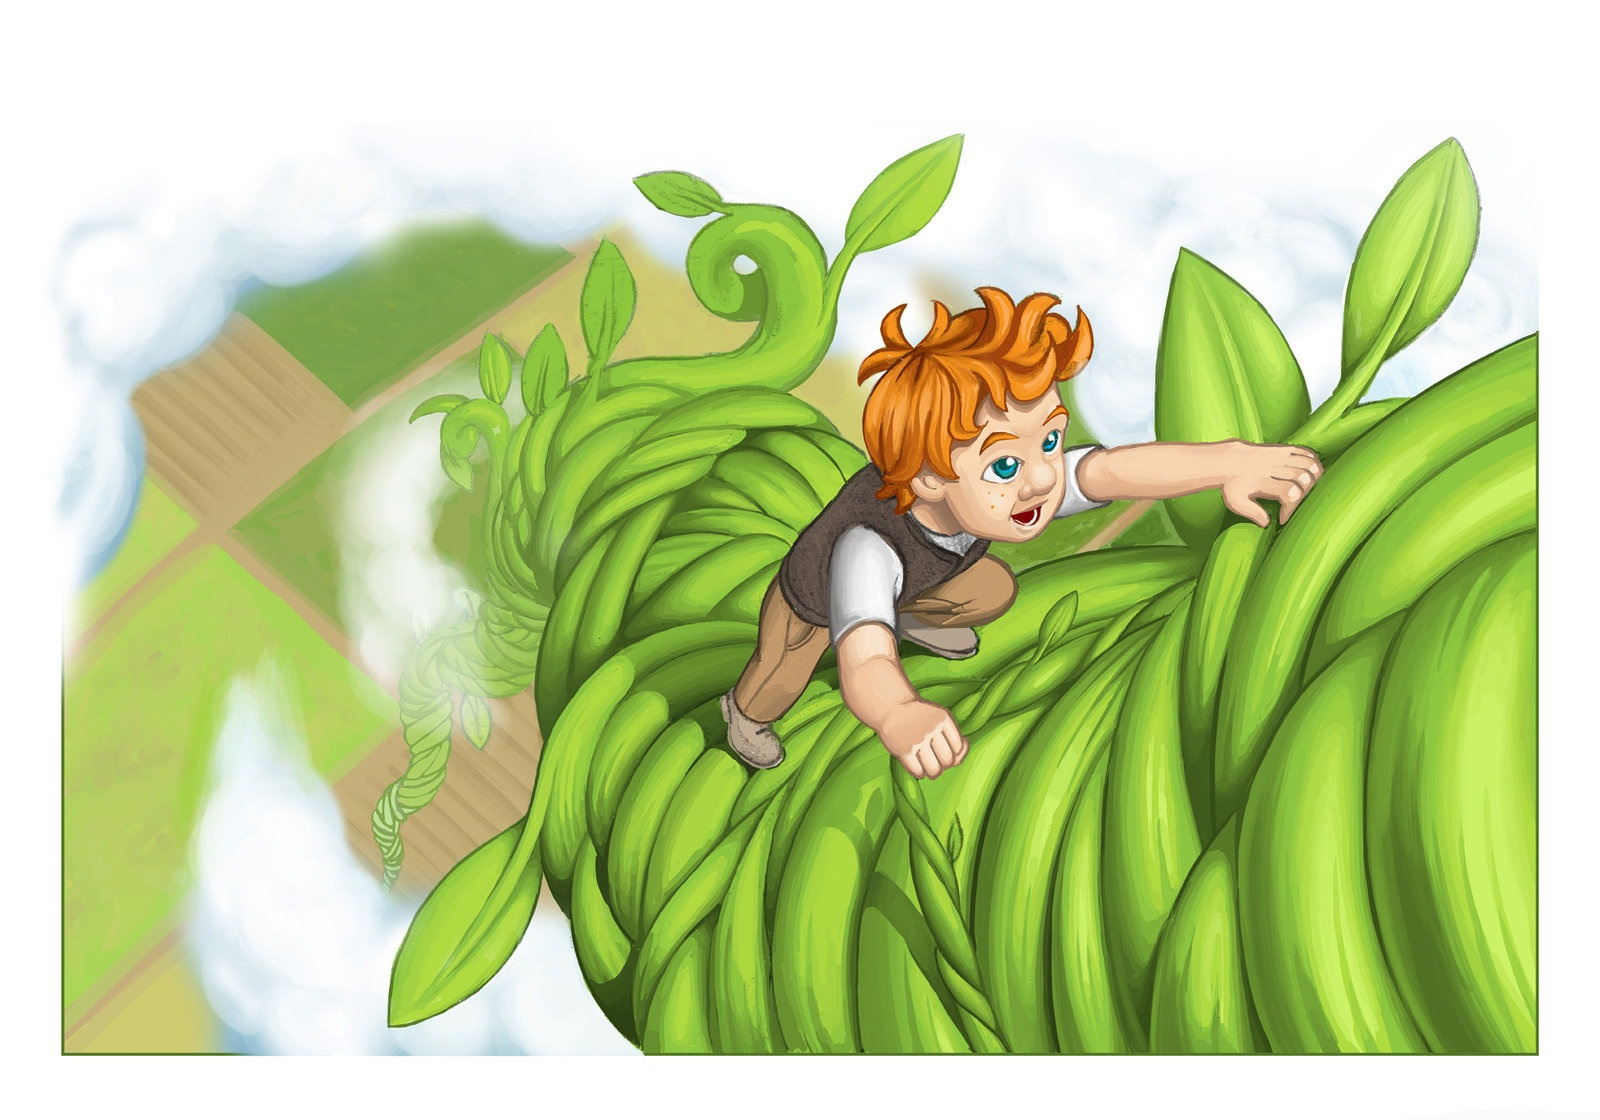 jack-and-the-beanstalk-pictures-cartoon